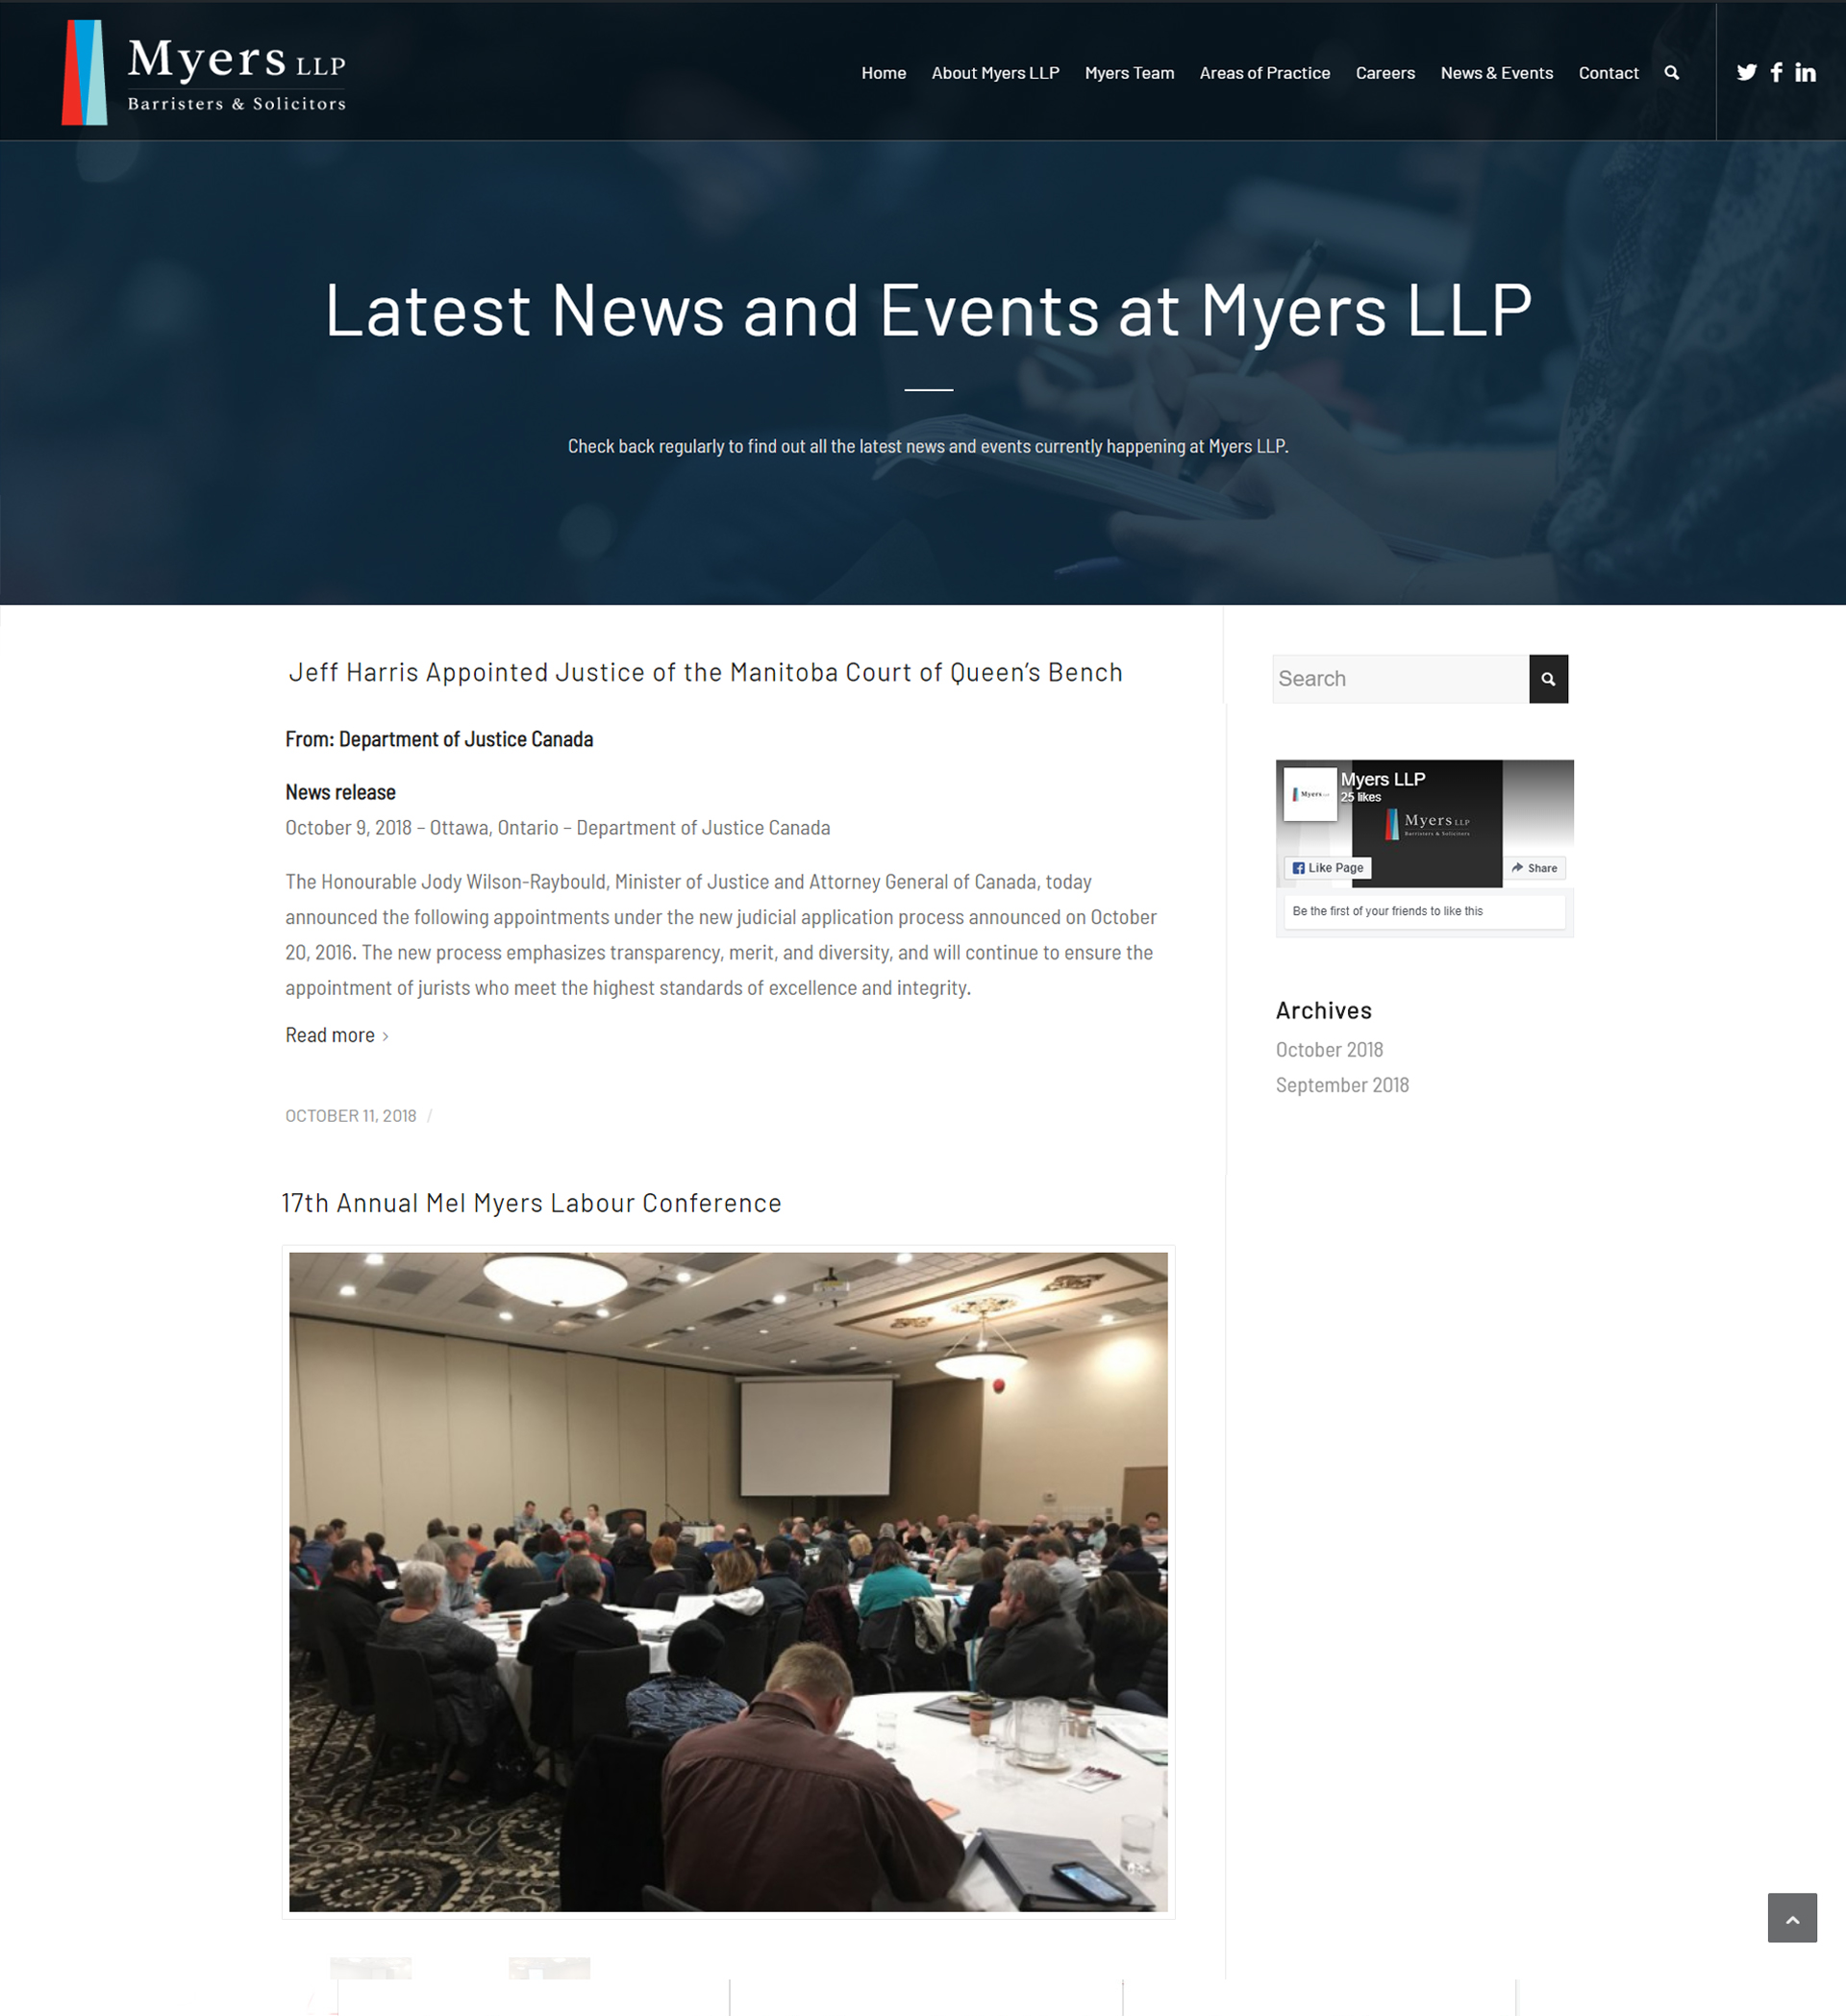 Myers LLP Website